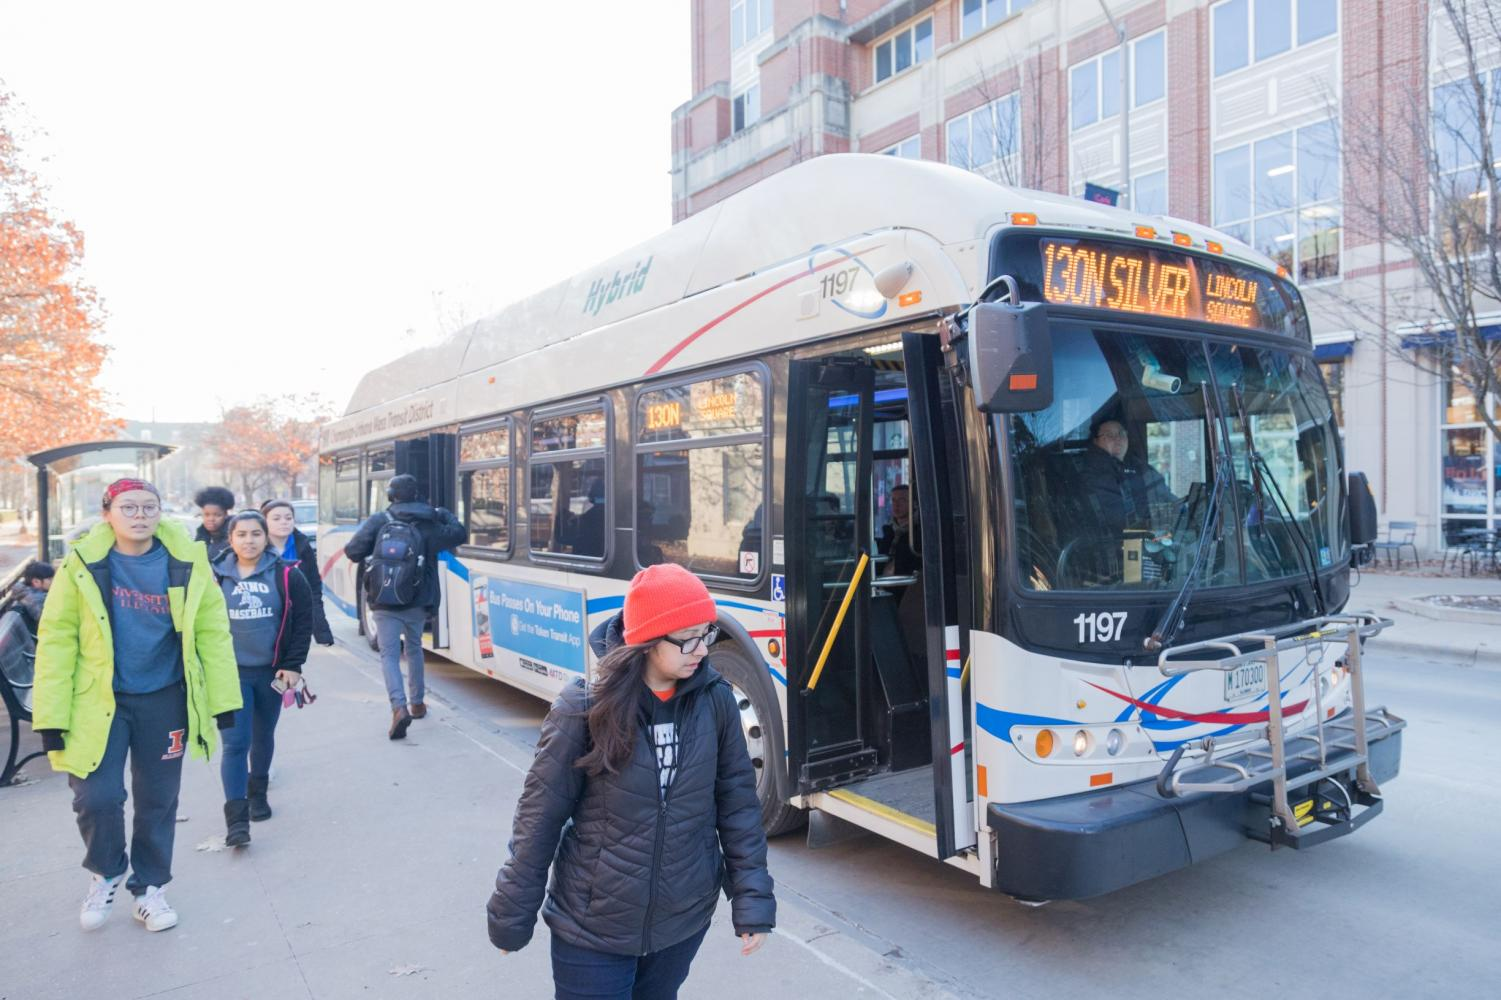 CUMTD buses see a 10 percent increase in ridership in winter. The transit company is trying to keep up with the increase in demand.